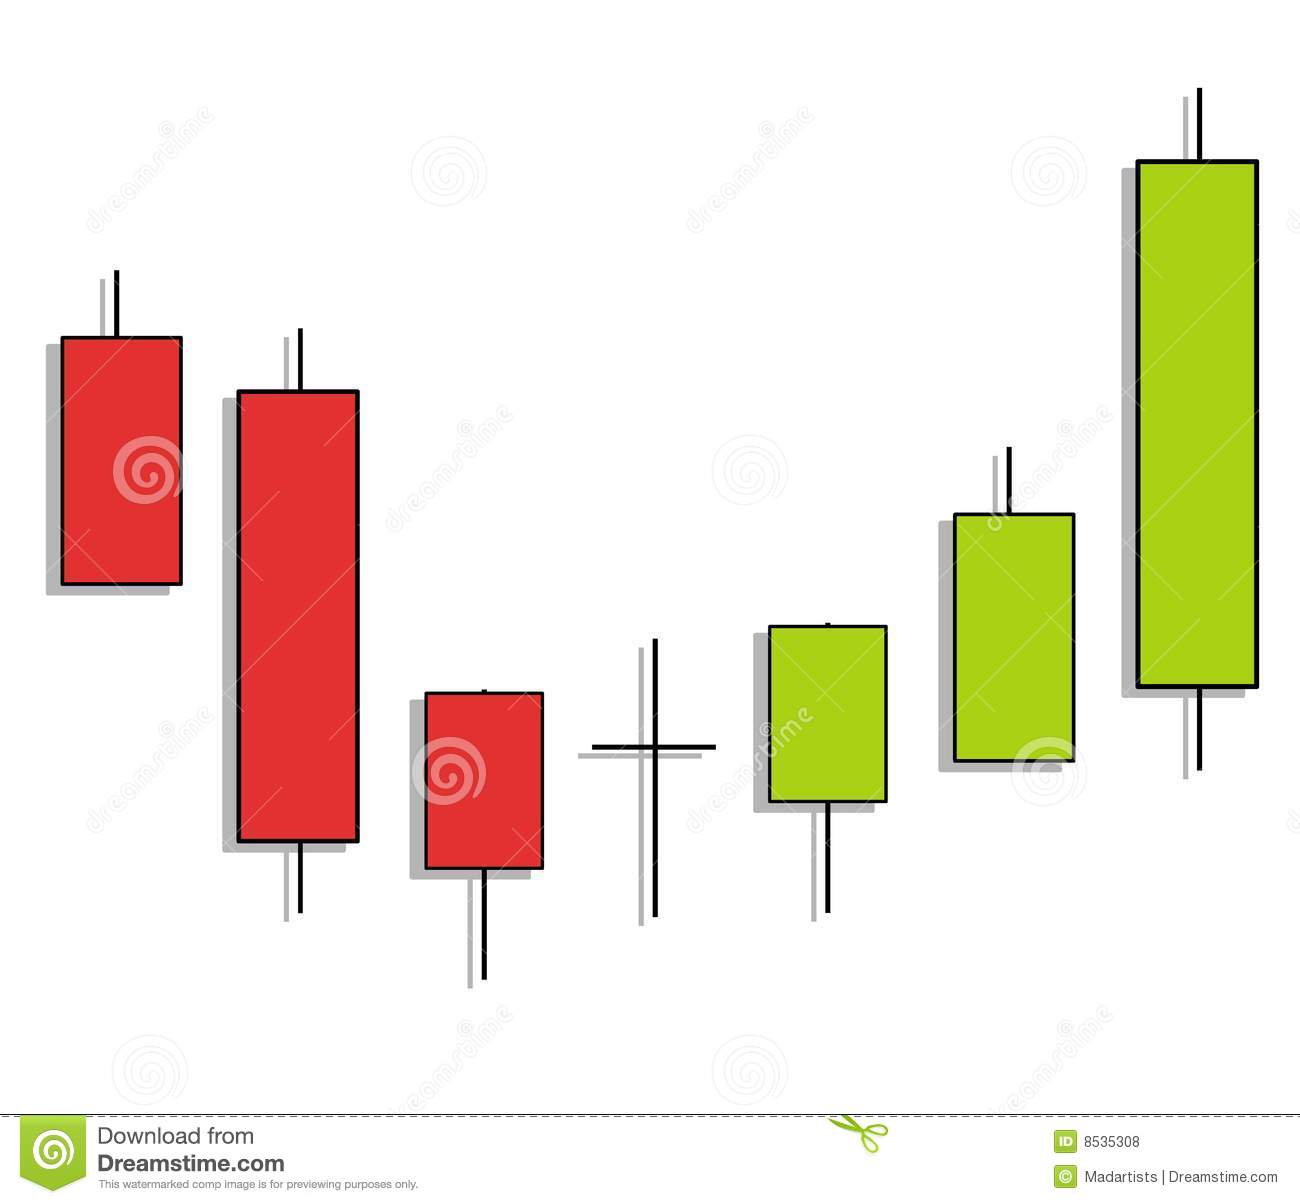 An illustration featuring a candlestick chart pattern showing a trend ...